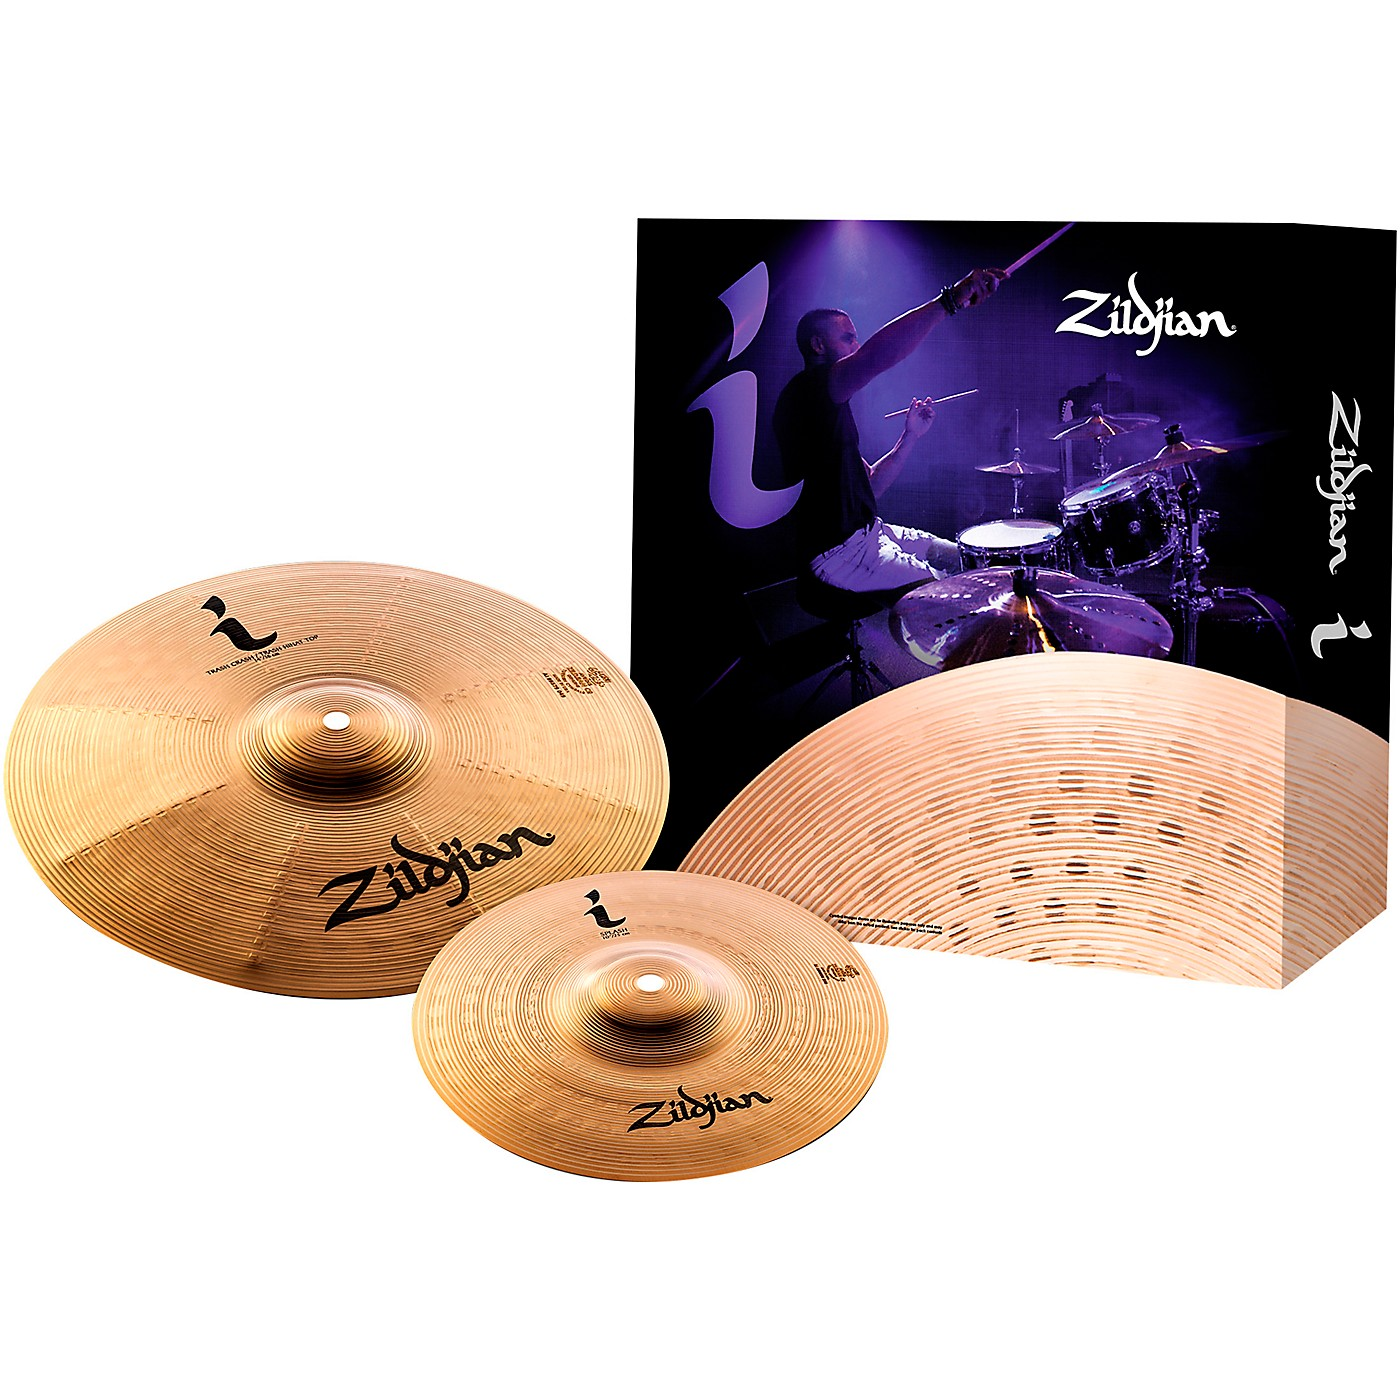 Zildjian I Series Expression Cymbal Set 1A thumbnail